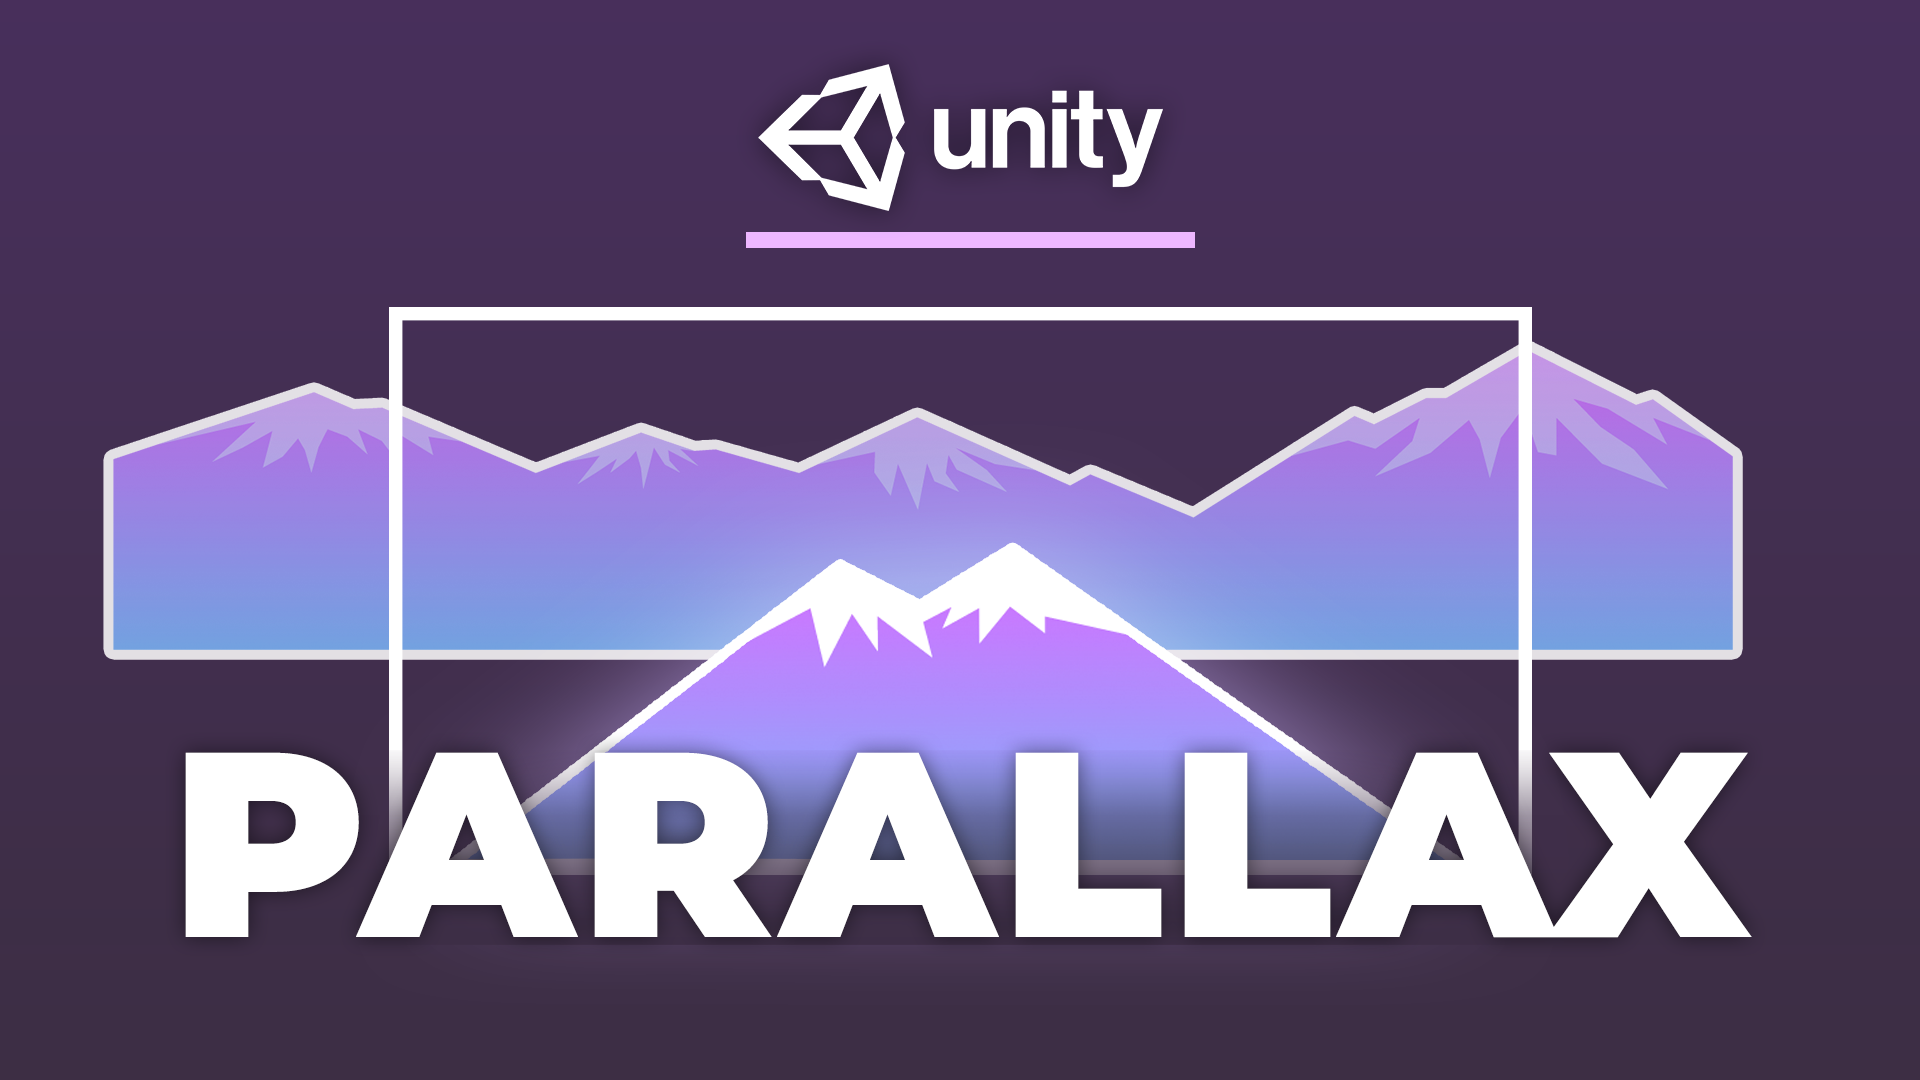 Parallax Effect in Unity - How to Create a Perspective Look Using an